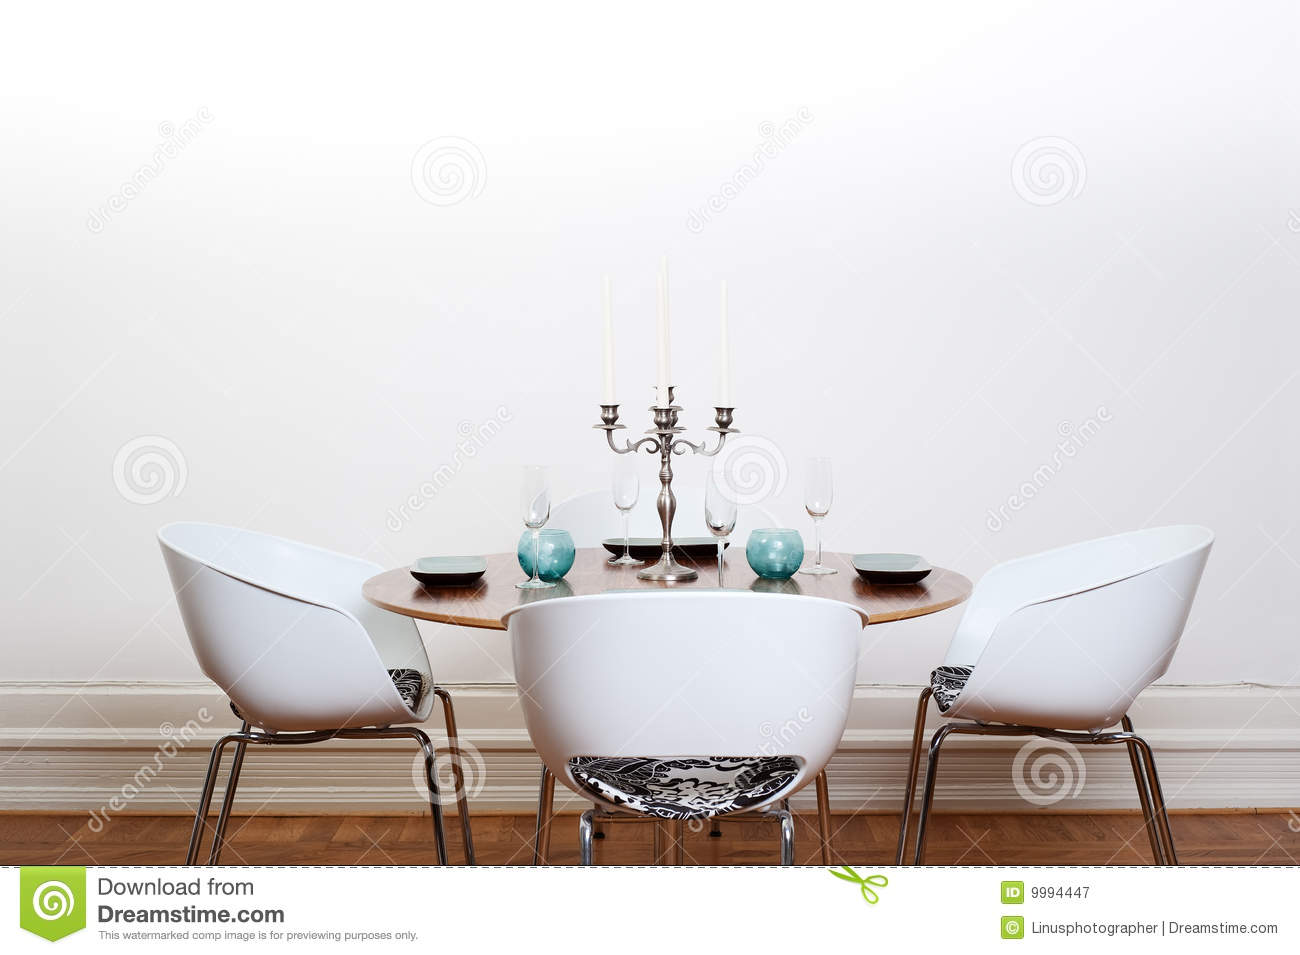 Salle manger moderne table ronde photographie stock for Table ronde moderne salle a manger